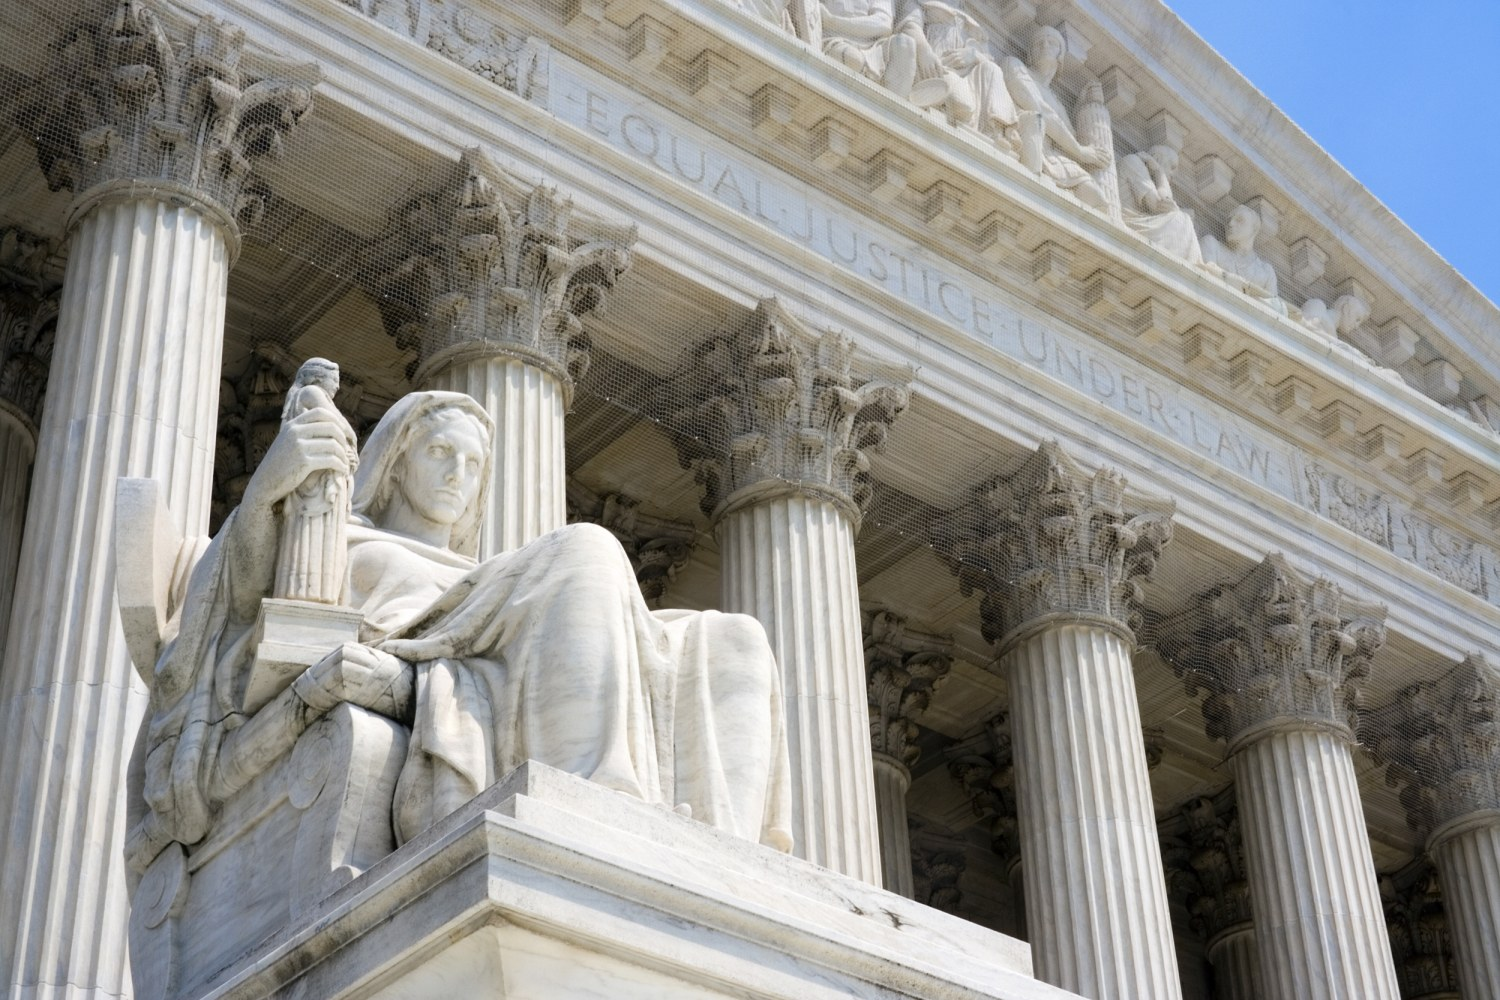 SCOTUS: Blocking Church Daycare From Grant Money Is 'Odious to Our Constitution'